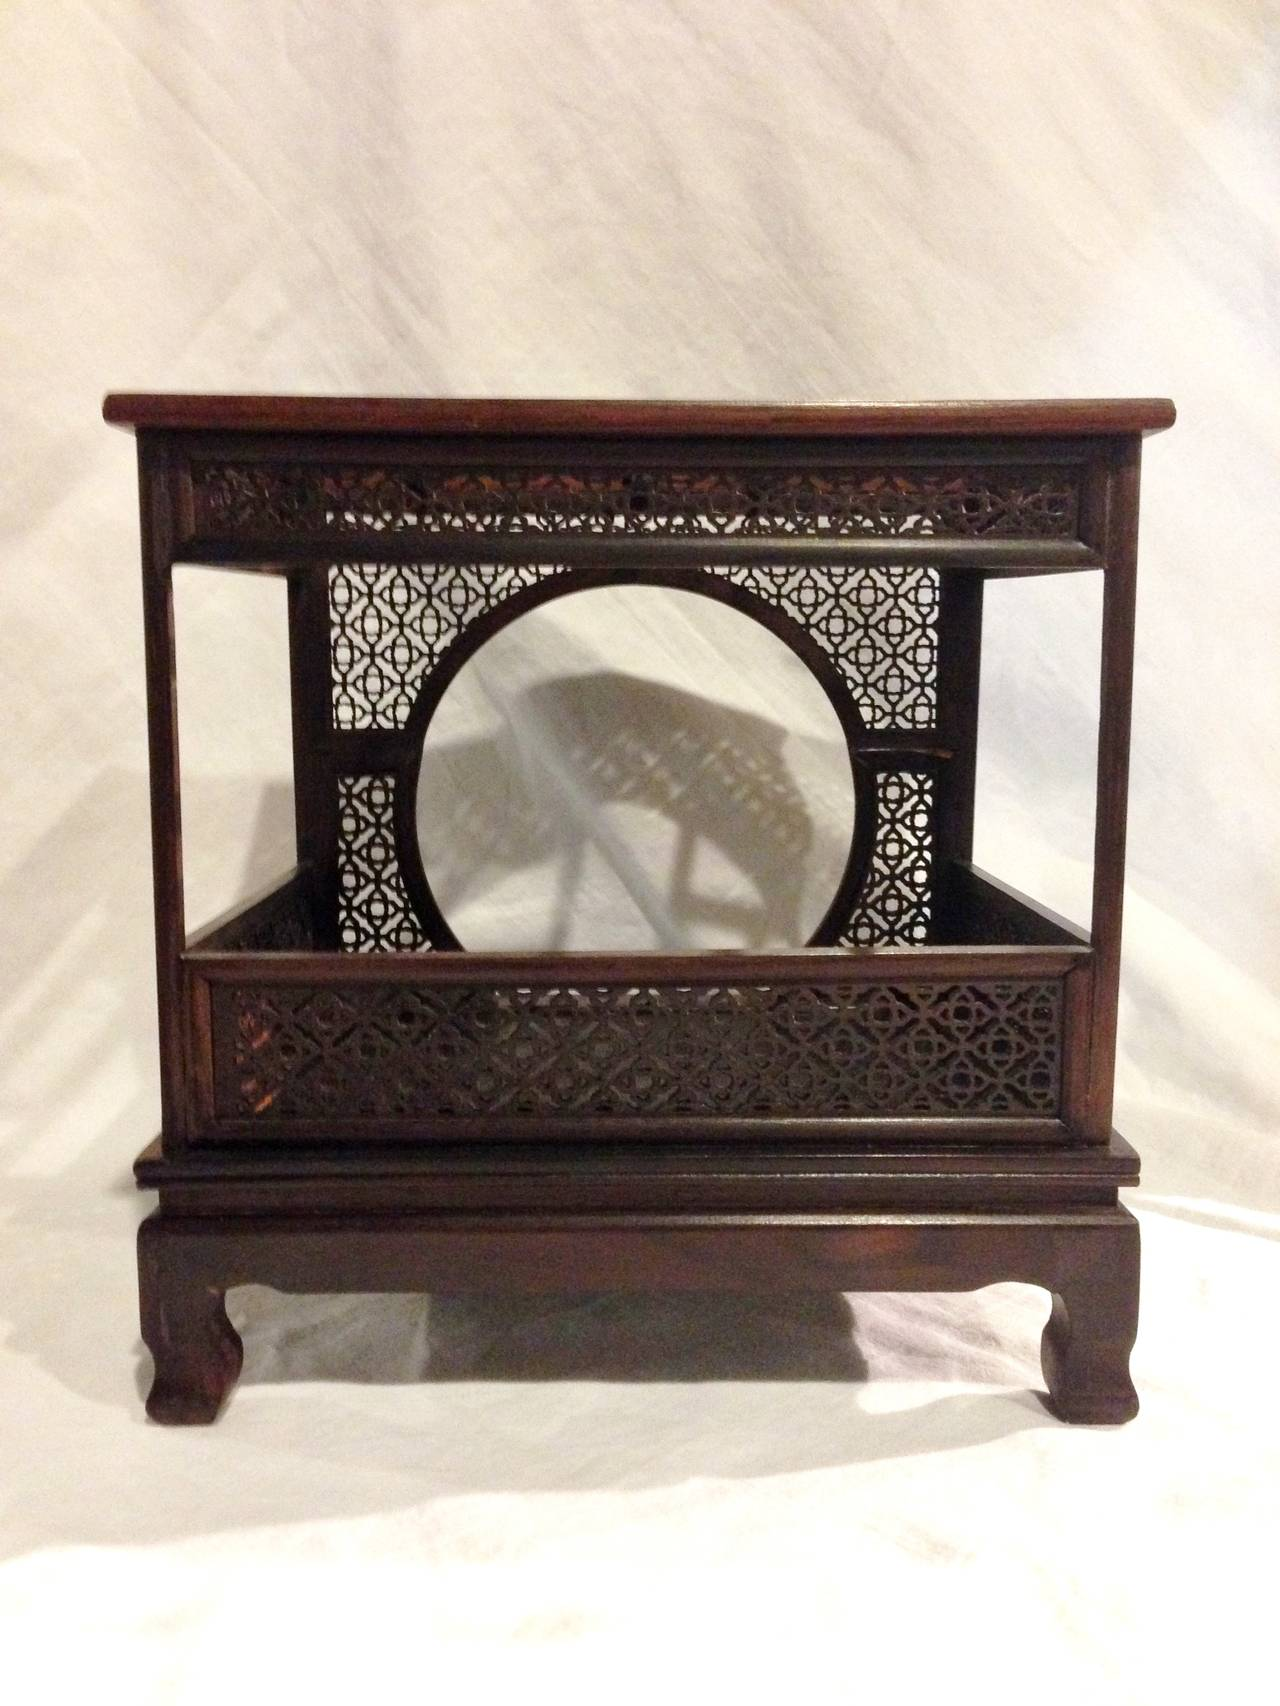 Rosewood chinese moon bed model or miniature image 4 for Chinese art furniture